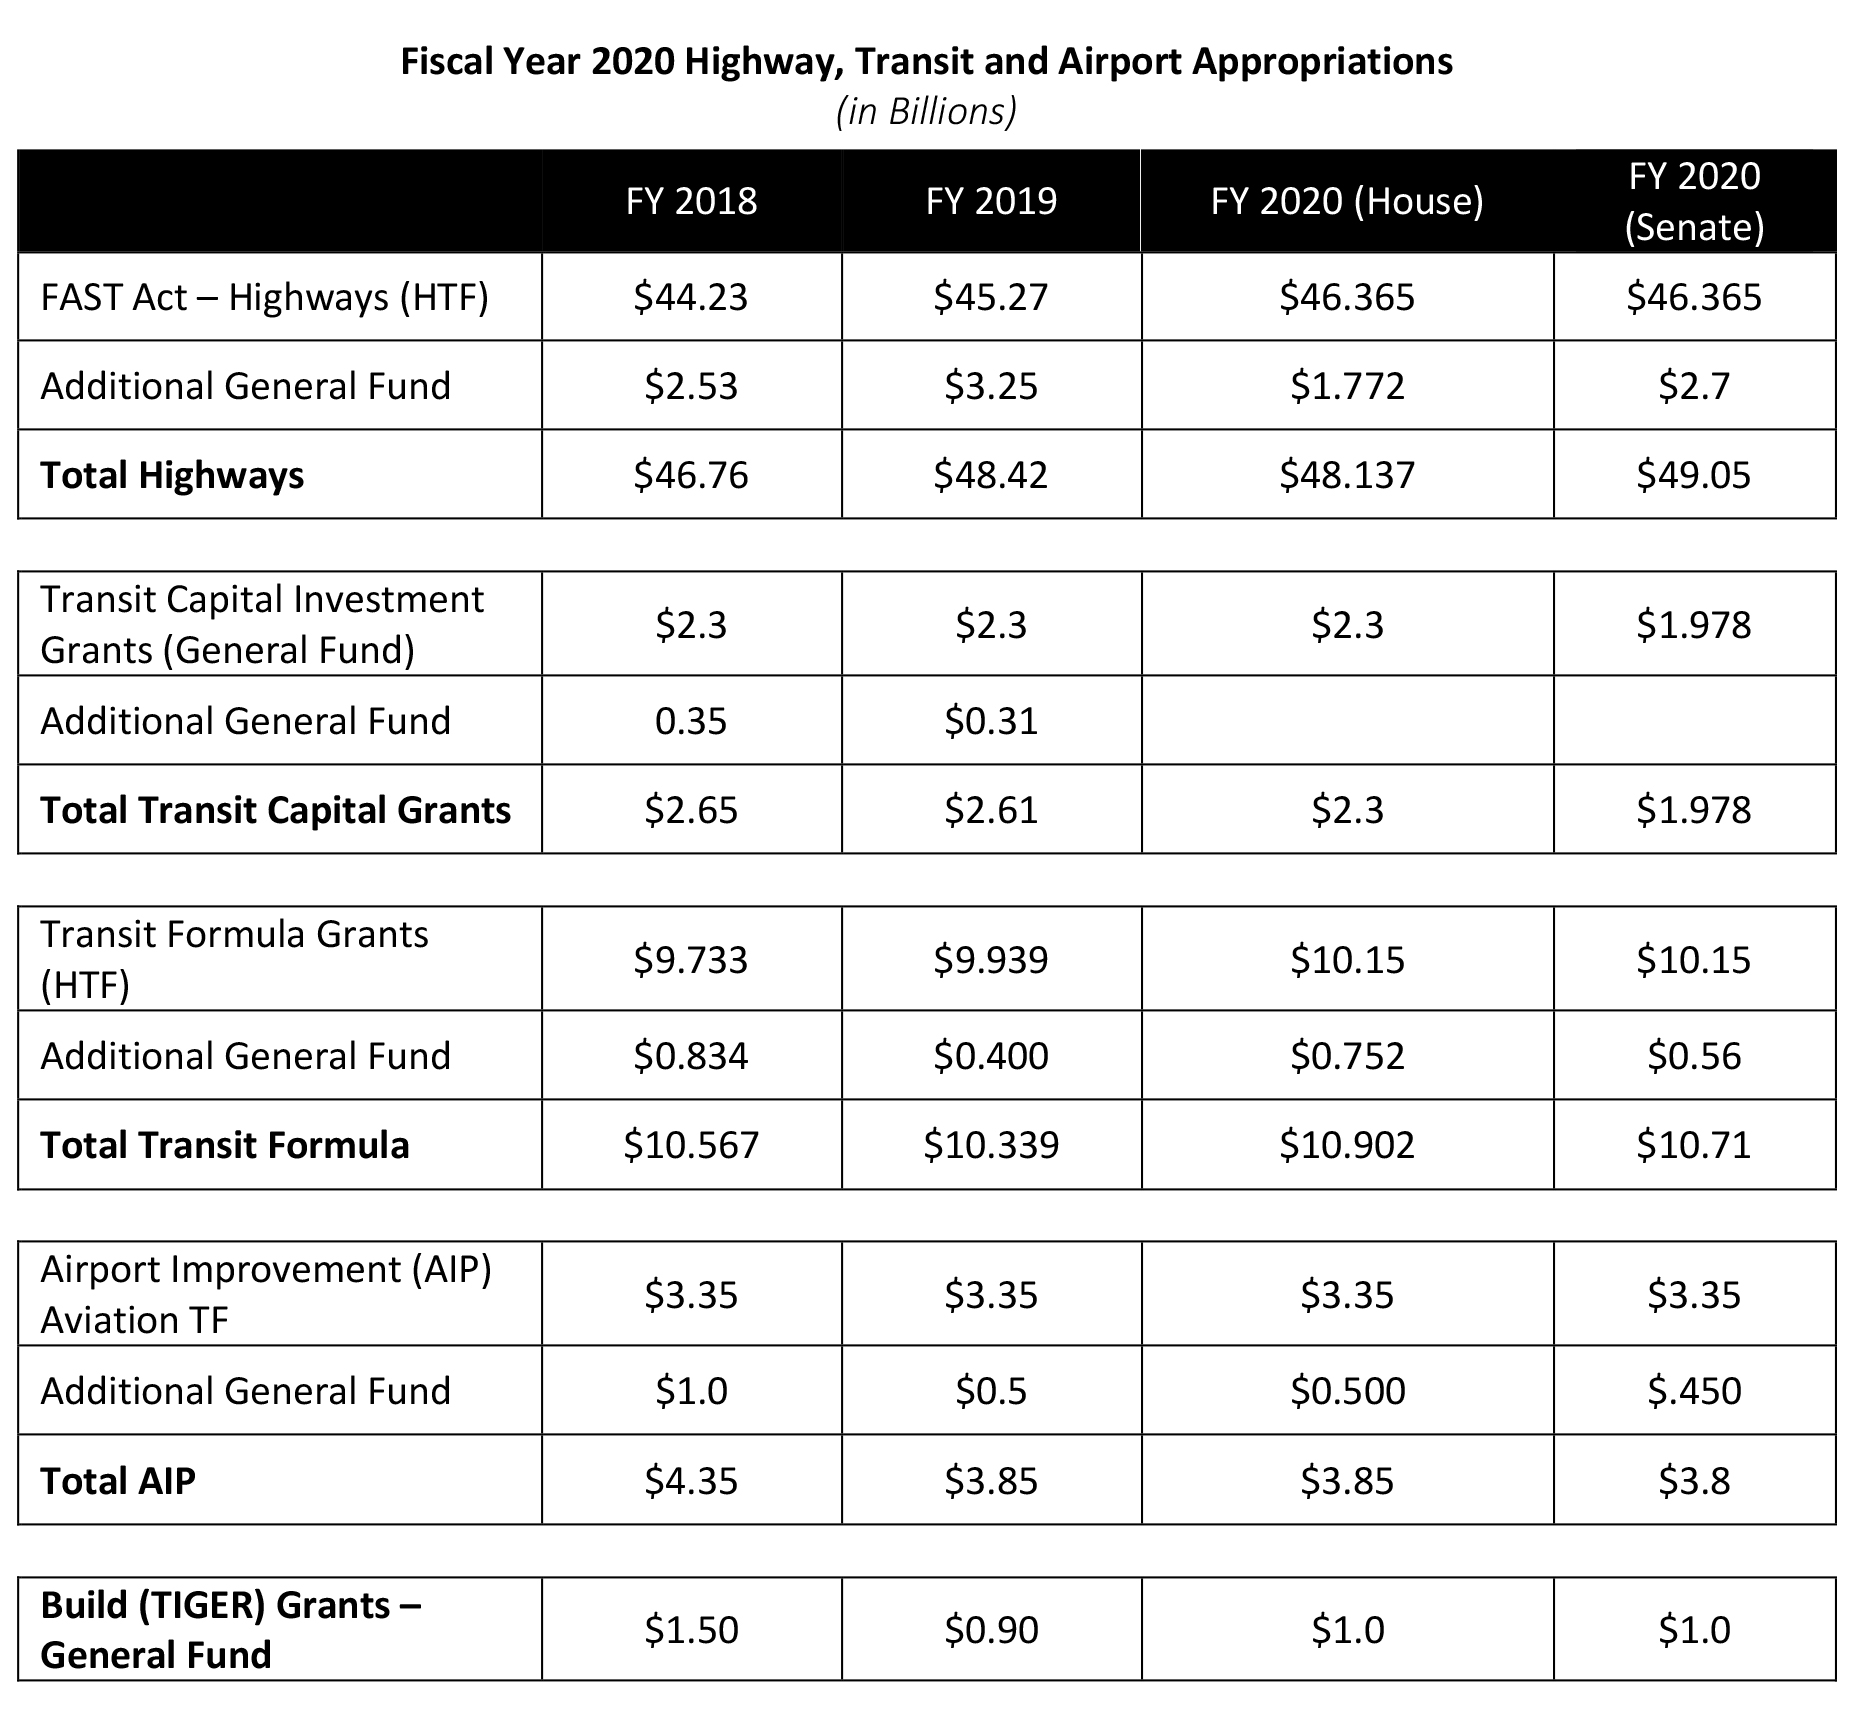 Fiscal Year 2020 Highway, Transit and Airport Appropriations